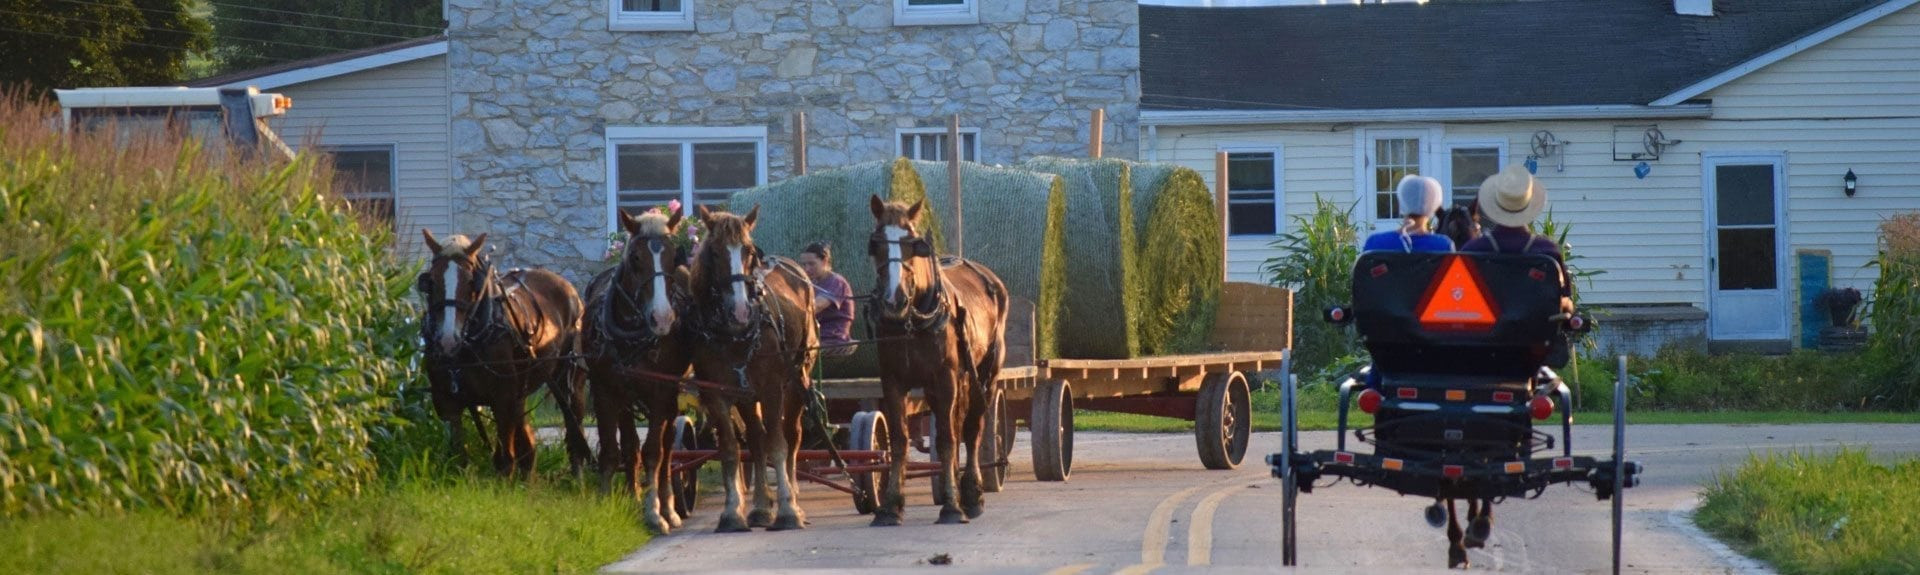 Easter Dinner Lancaster Pa  Amish Sightseeing Bus Trips Group Tours in Lancaster